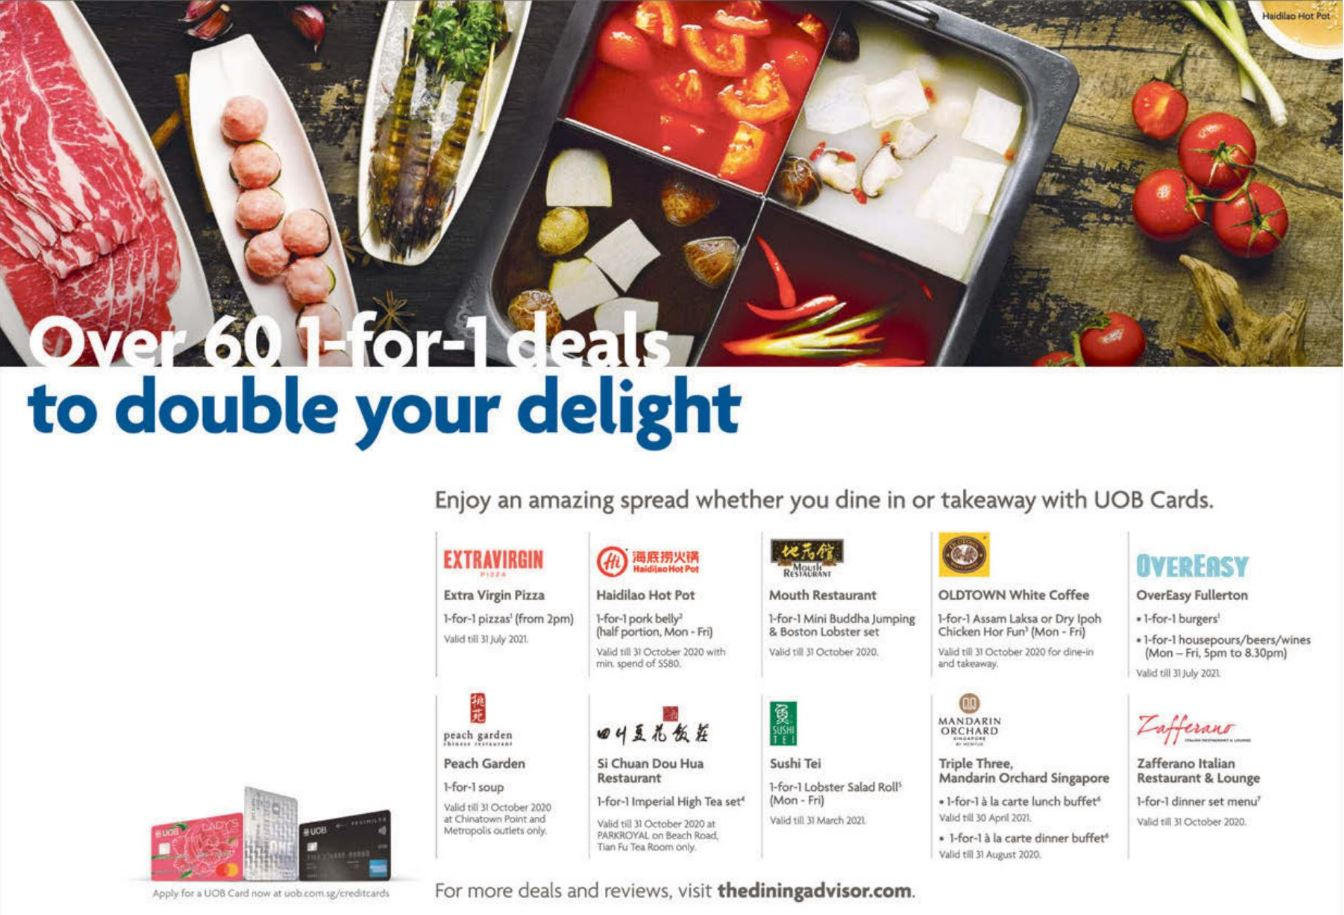 Enjoy over 60 1-for-1 dining deals with UOB Cards